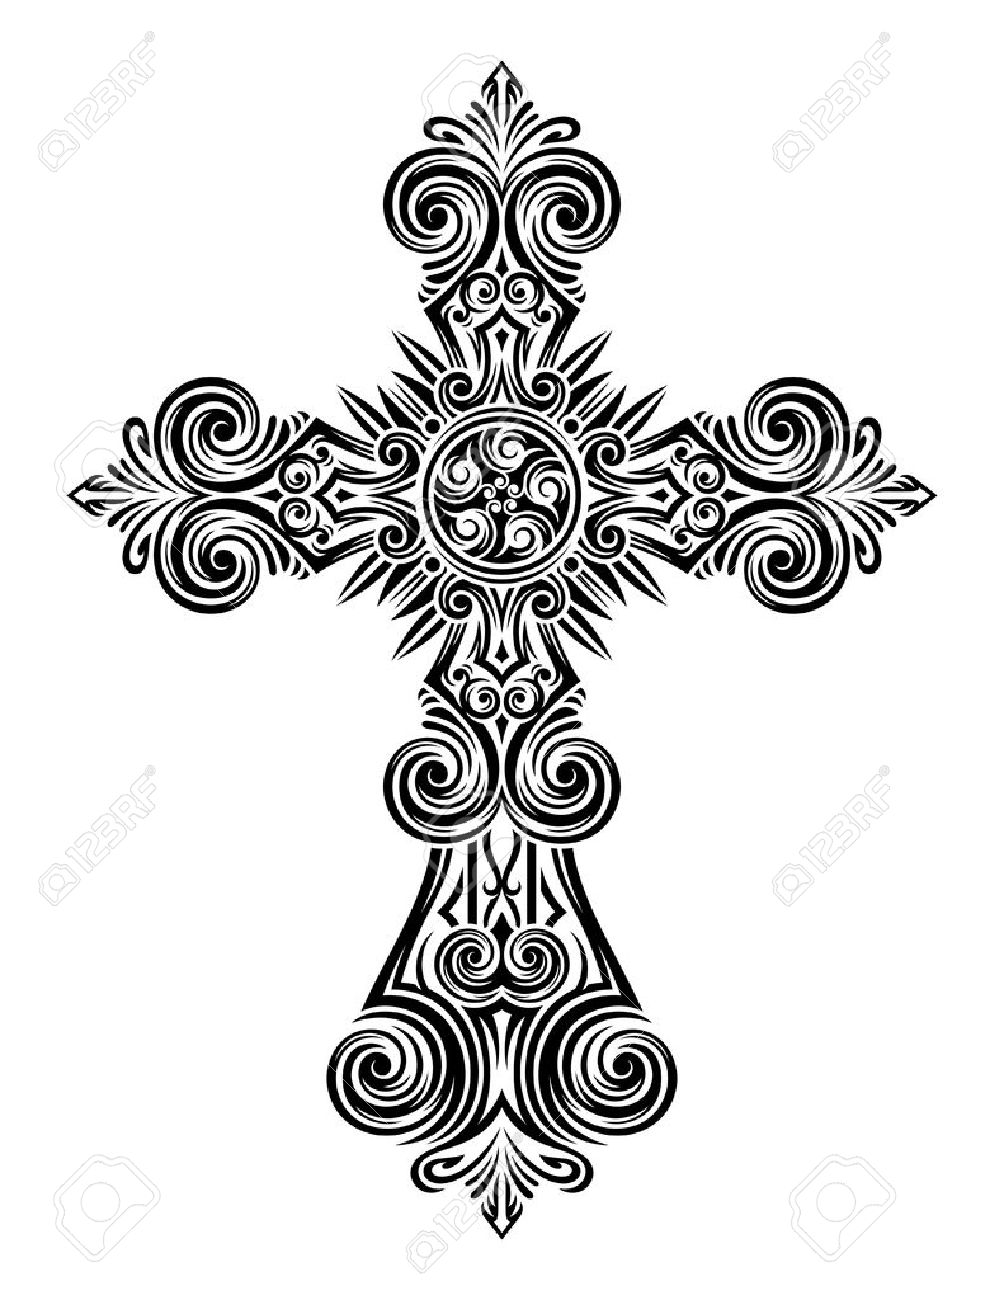 T-shirt logo design - Vector Fully Editable Illustration Of Vintage Cross Image Suitable For Logo Design Elements Printing On A T Shirt As Well As For All Types Of Printing